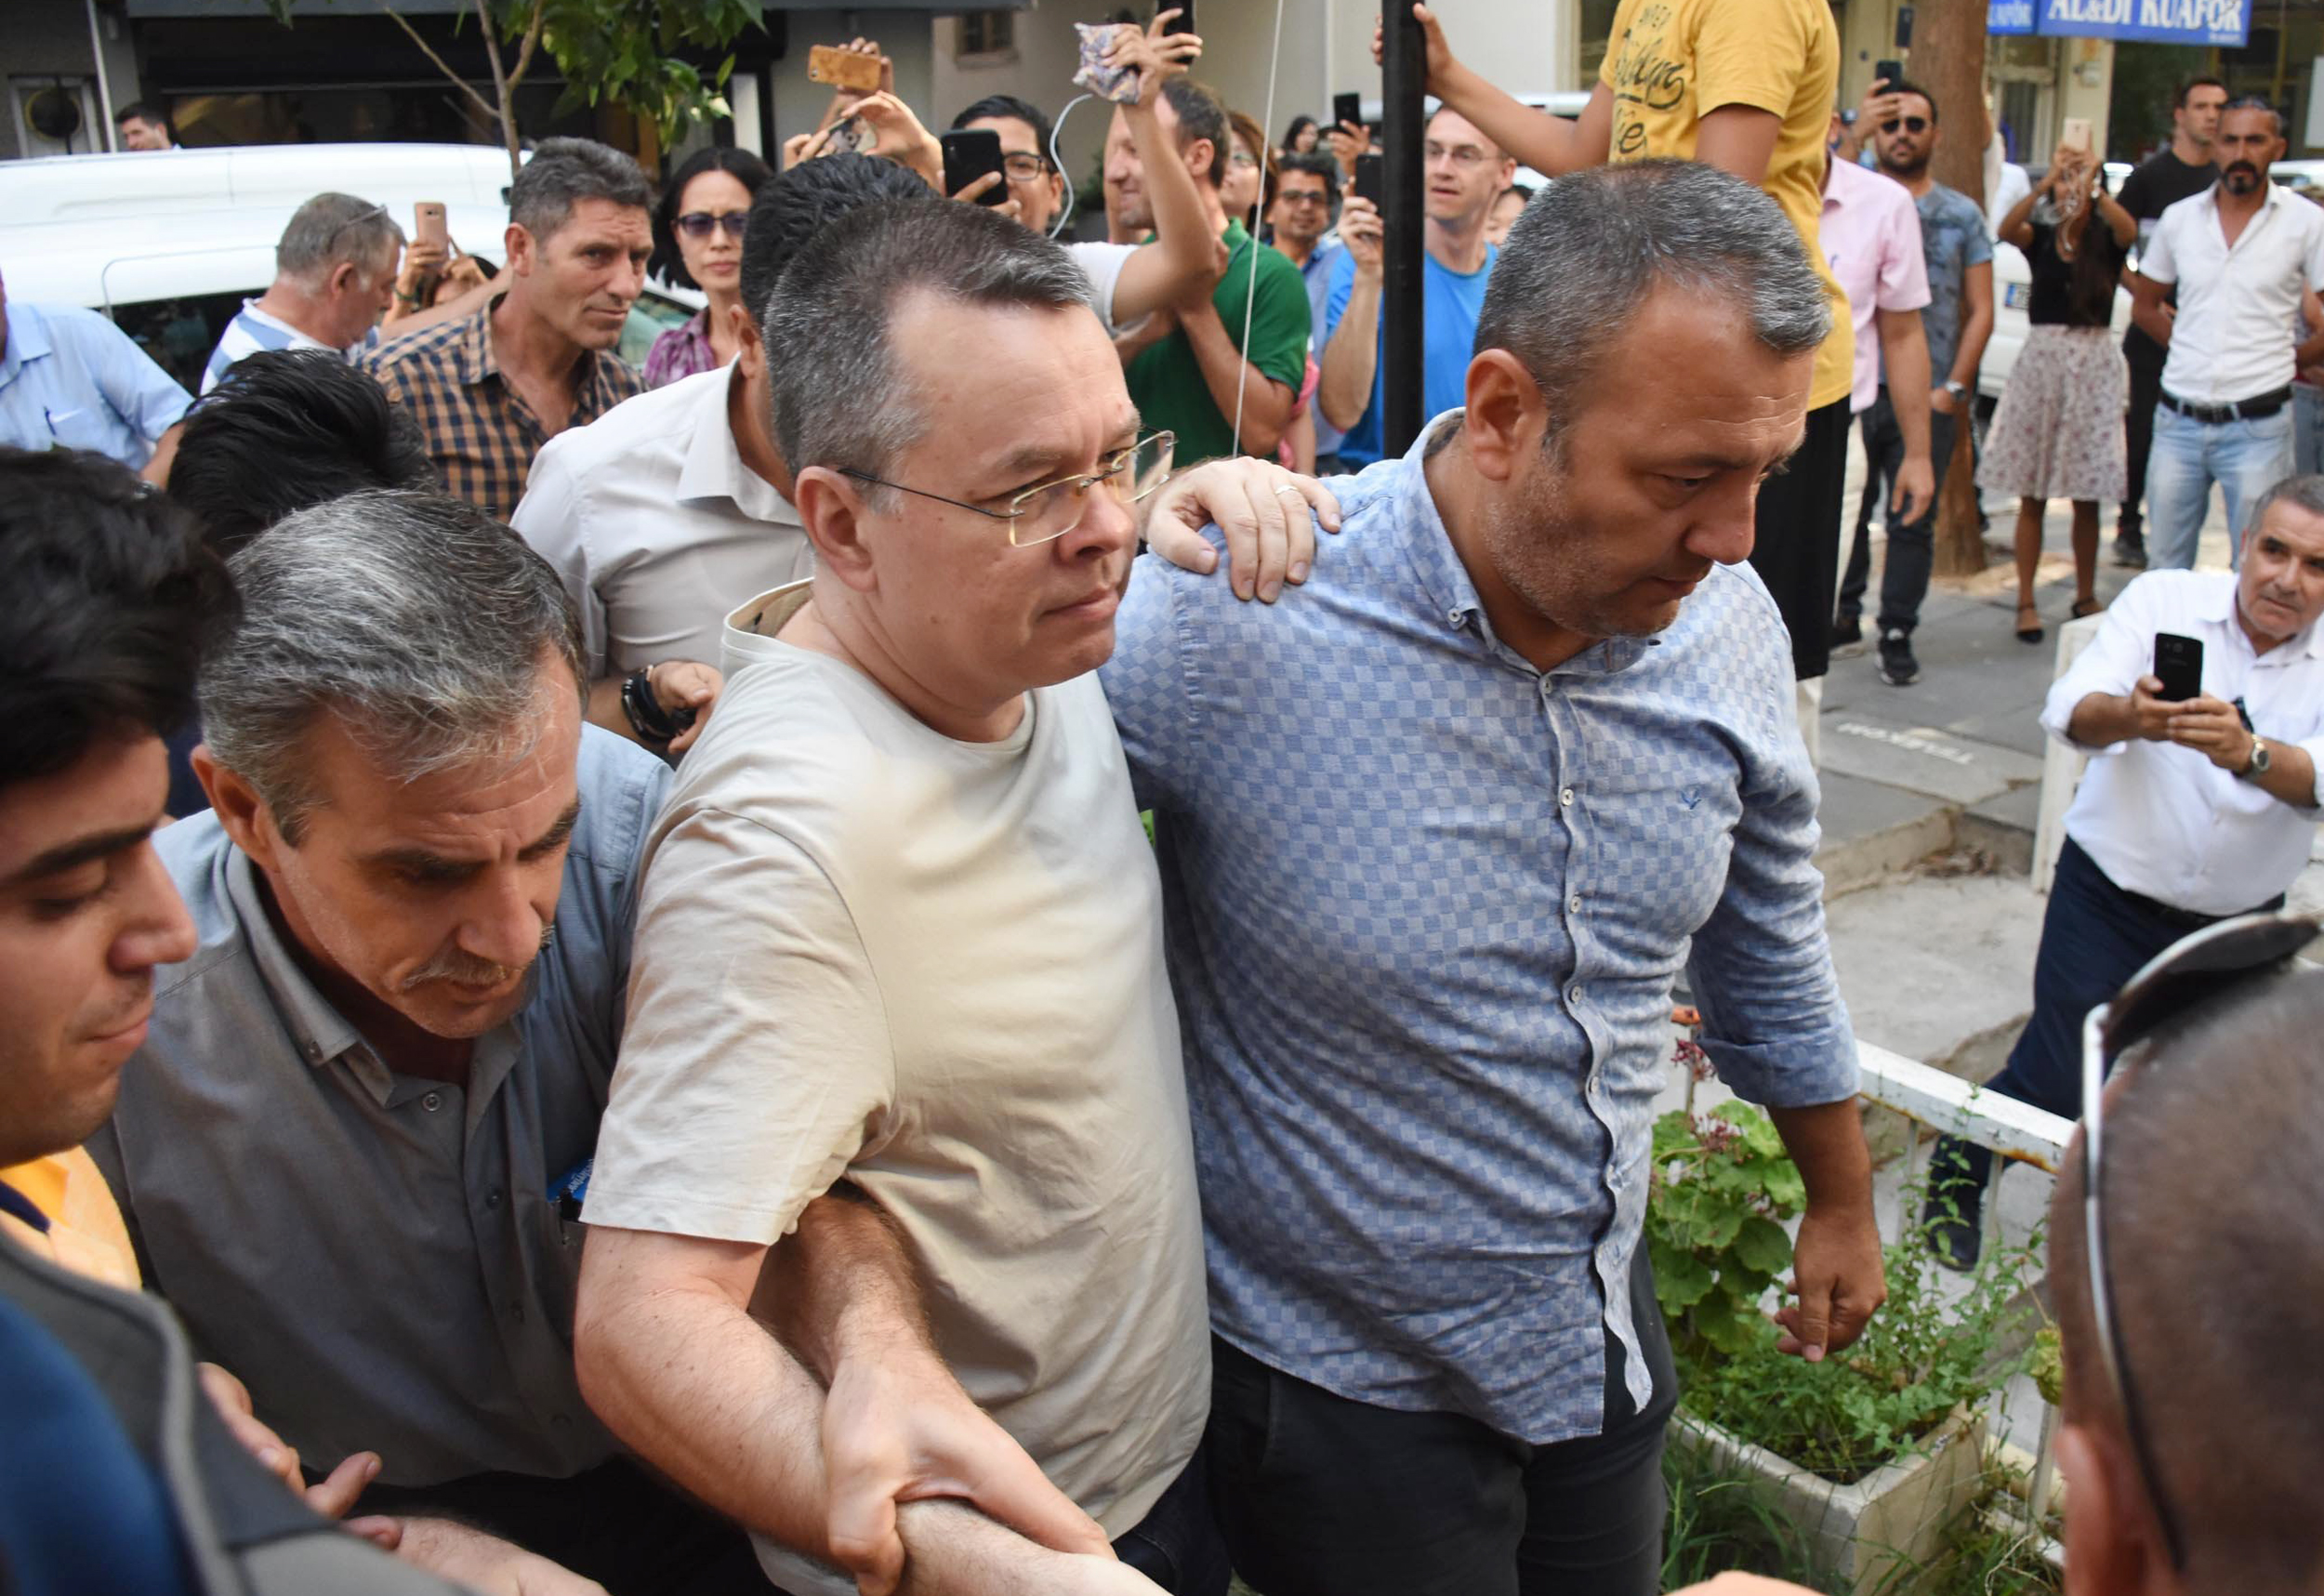 U.S. pastor Andrew Brunson released from prison in Turkey, under house arrest